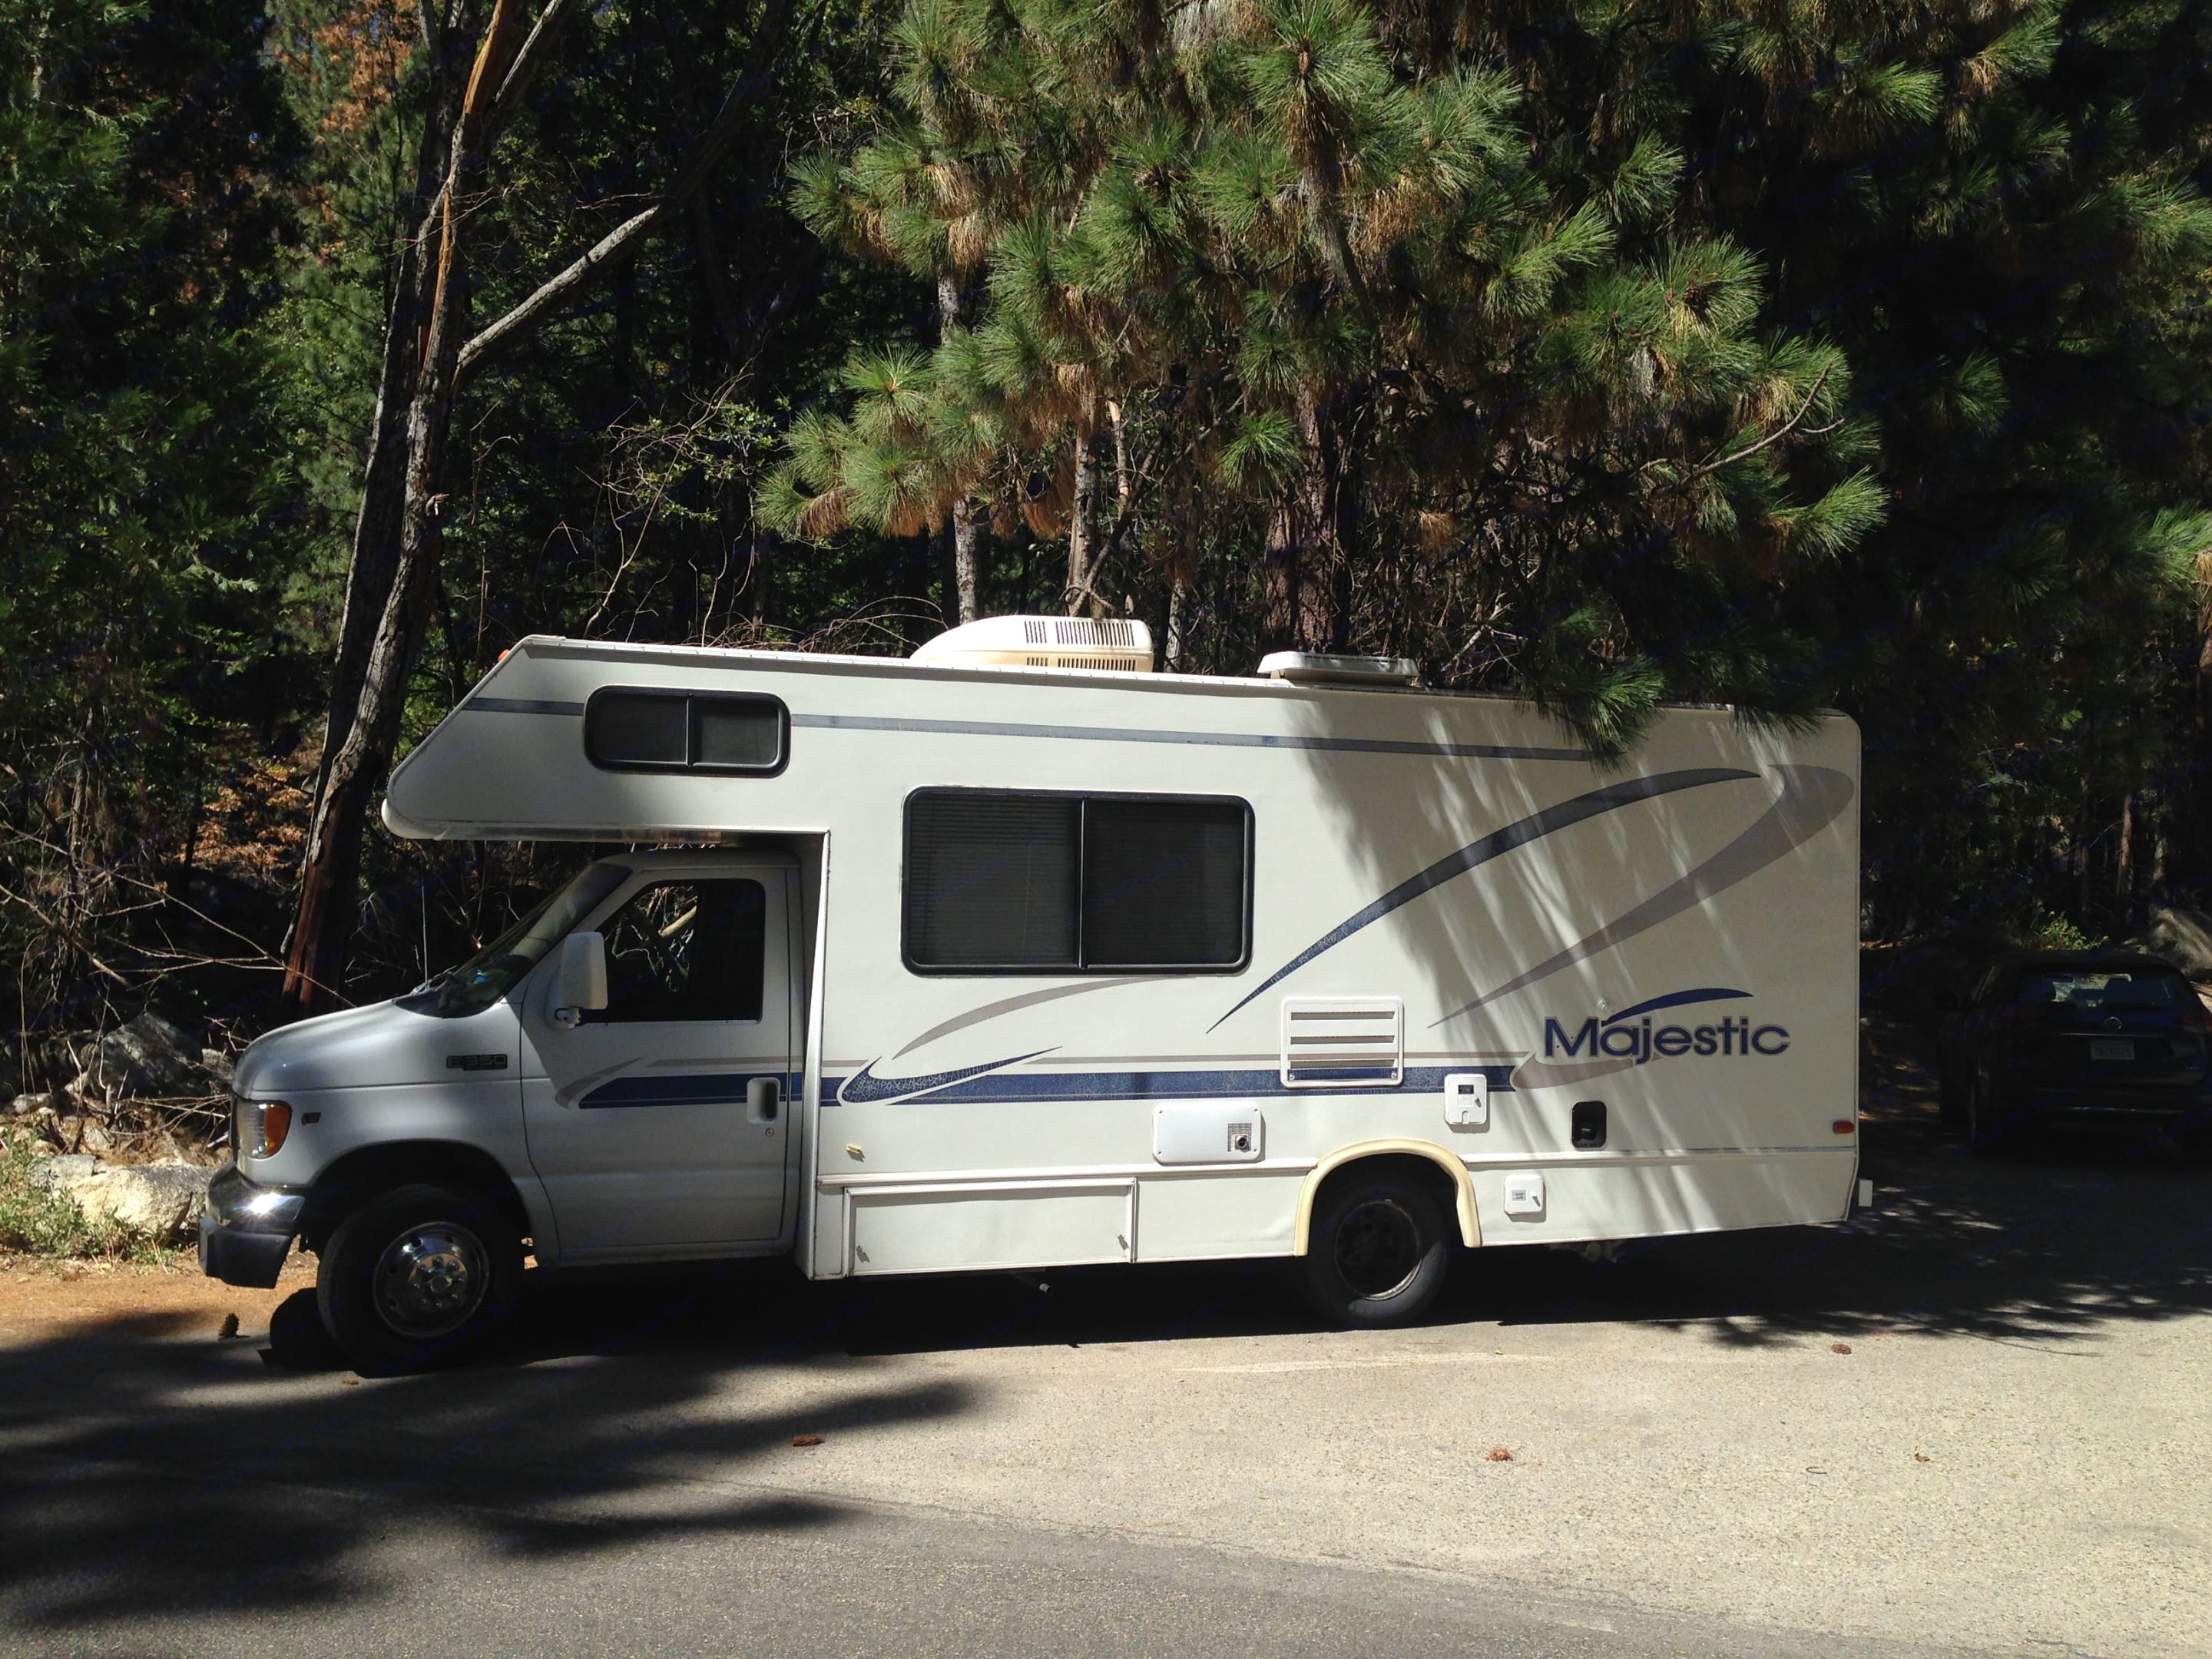 This is my happy place.  Has everything i need.  I do national parks and cross country trips with this.  Always mets my needs.  Easily handled the crazy roads of Kings Canyon National Park and Sequoia Nation Park.   I could go on..... Thor Motor Coach Four Winds Majestic 2000